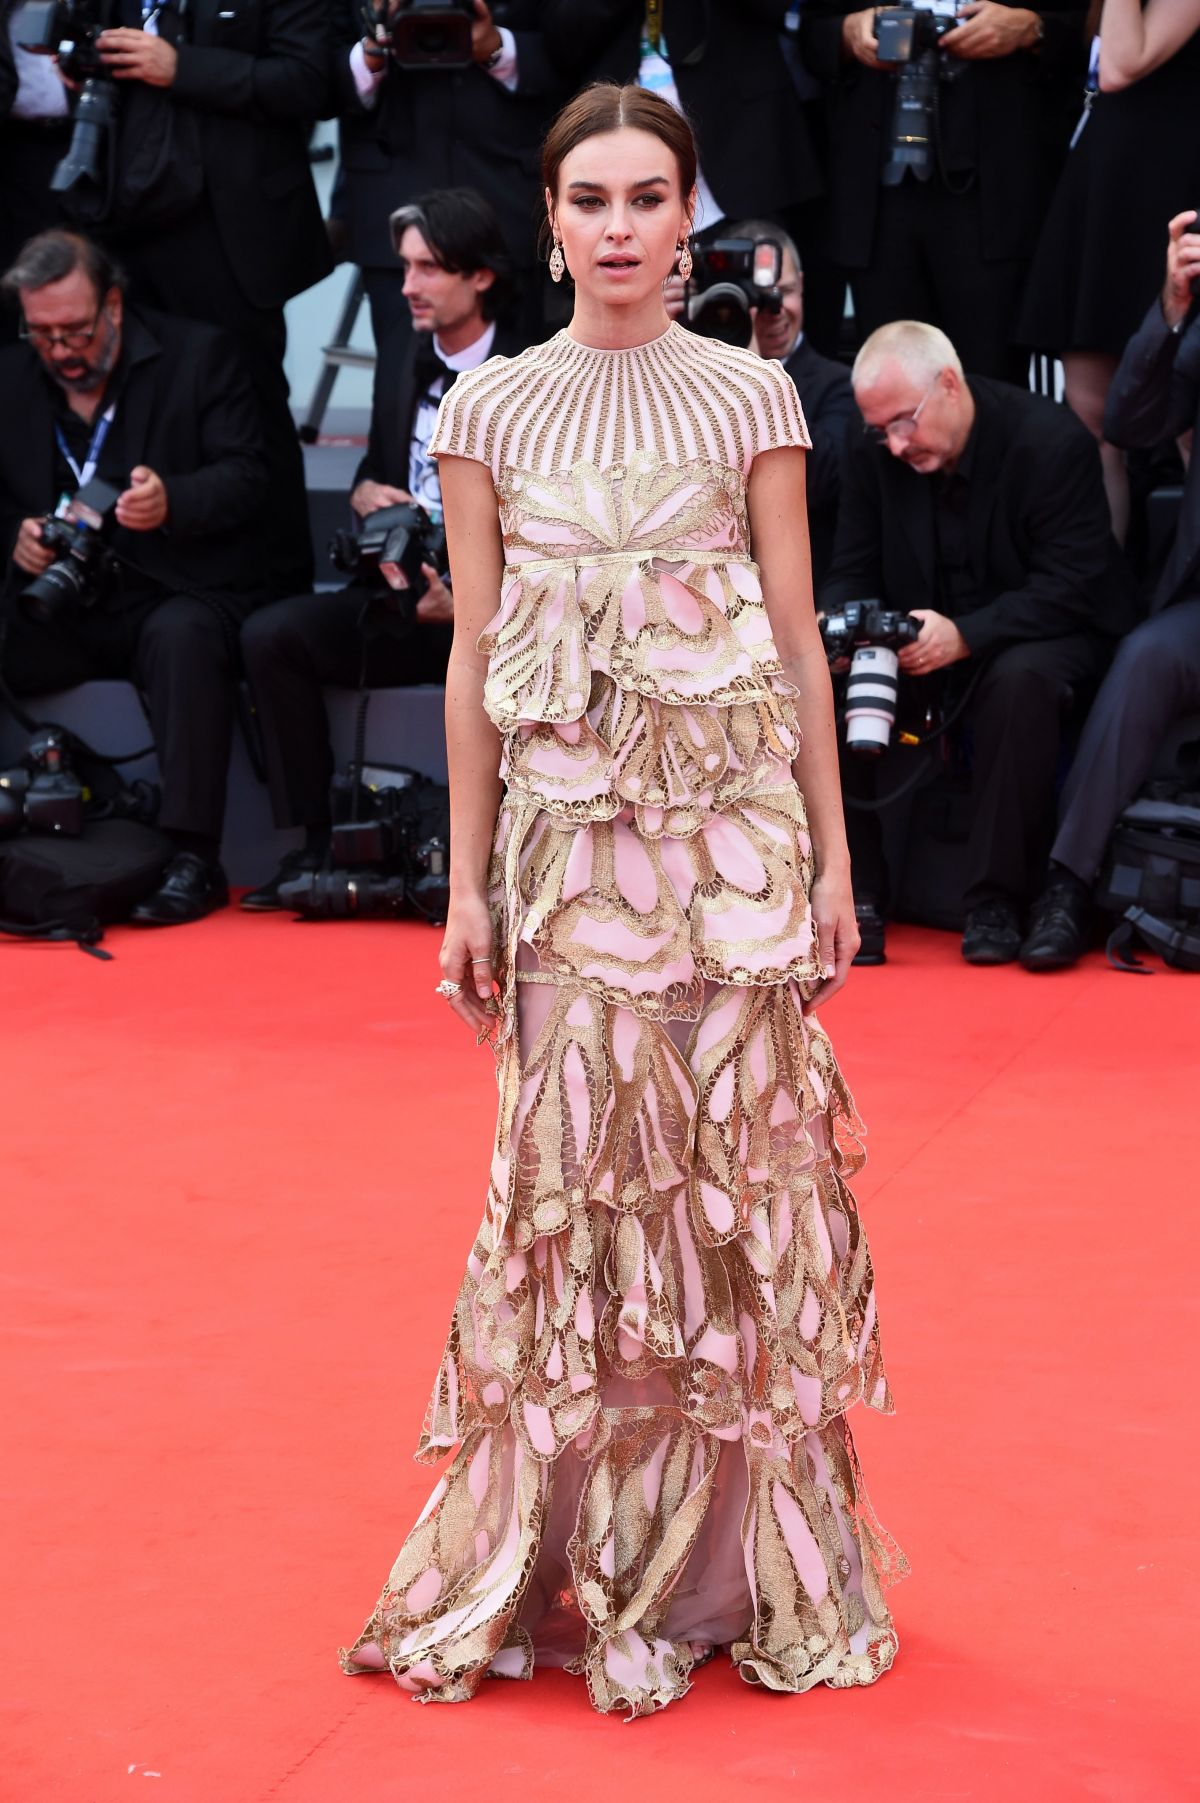 KASIA SMUTNIAK at Everest Premiere and 72nd Venice Film Festival Opening Ceremony 09/02/2015